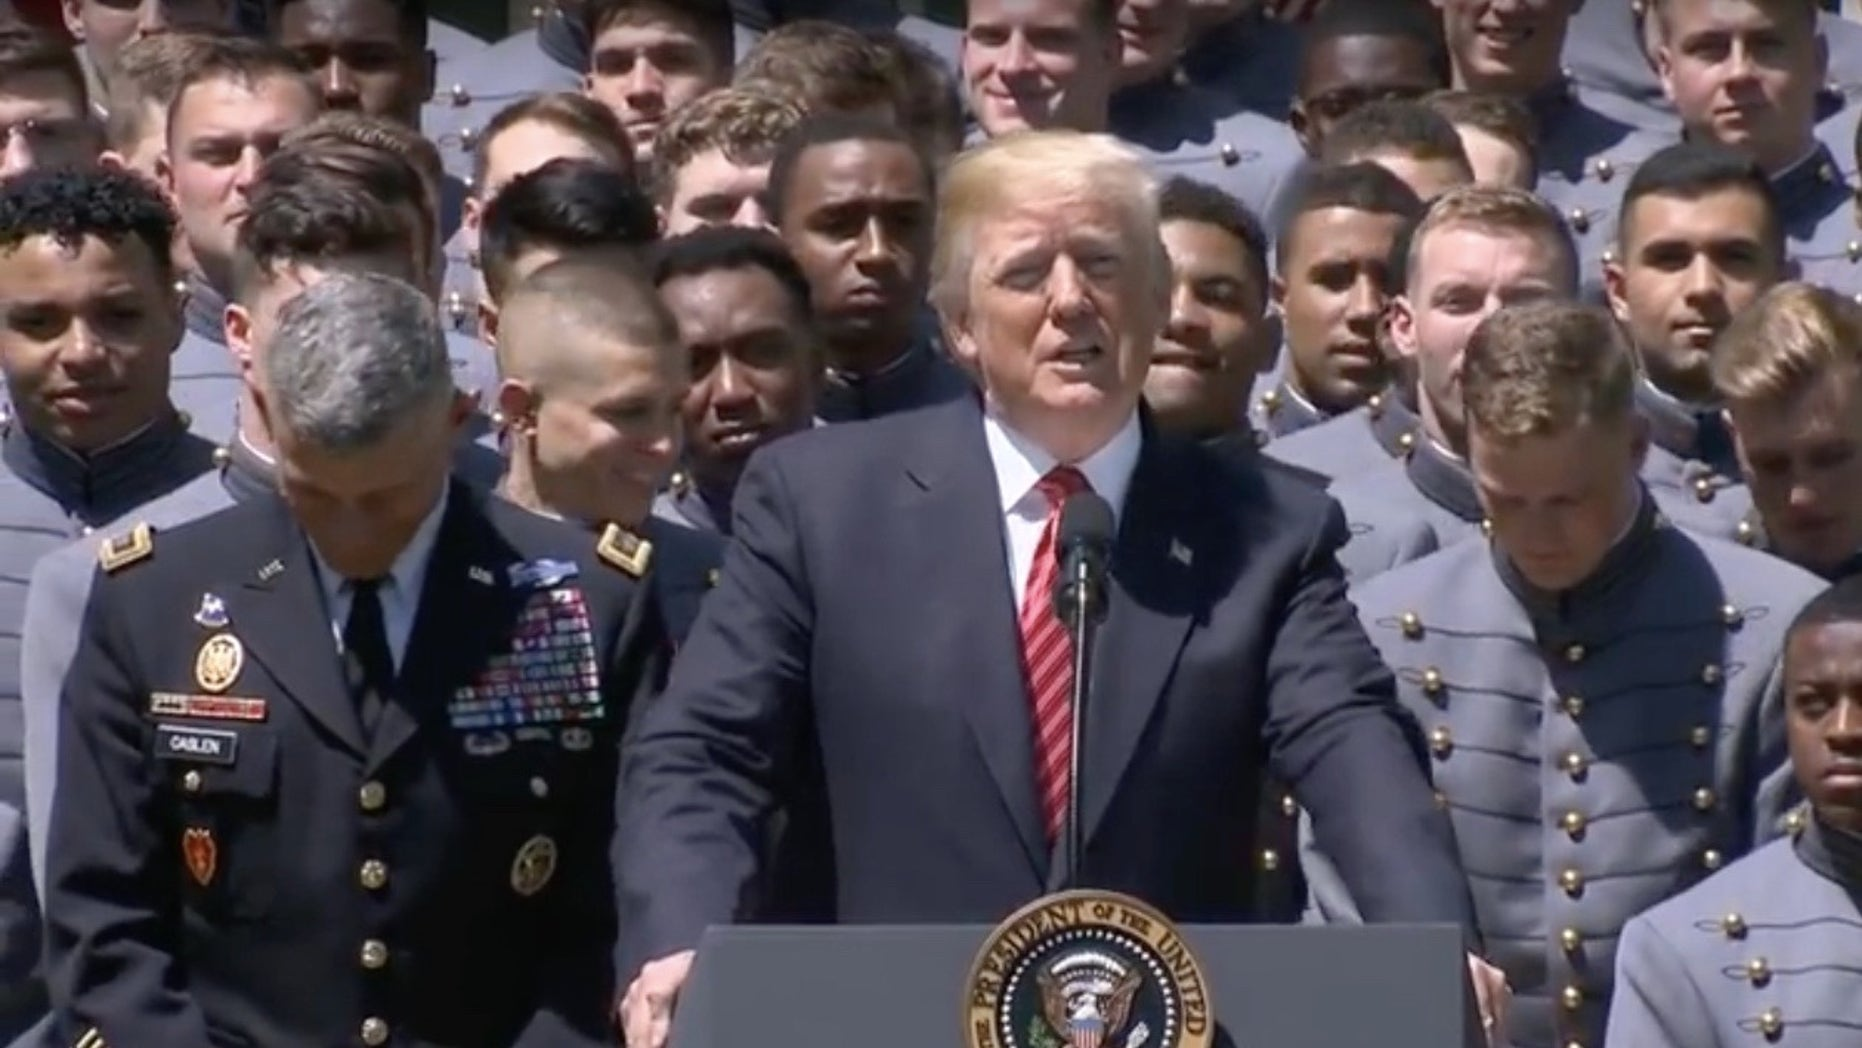 President Donald Trump presents the Commander-in-Chief's Trophy to the Army Black Knights college football team during a ceremony at the White House on May 1, 2018.